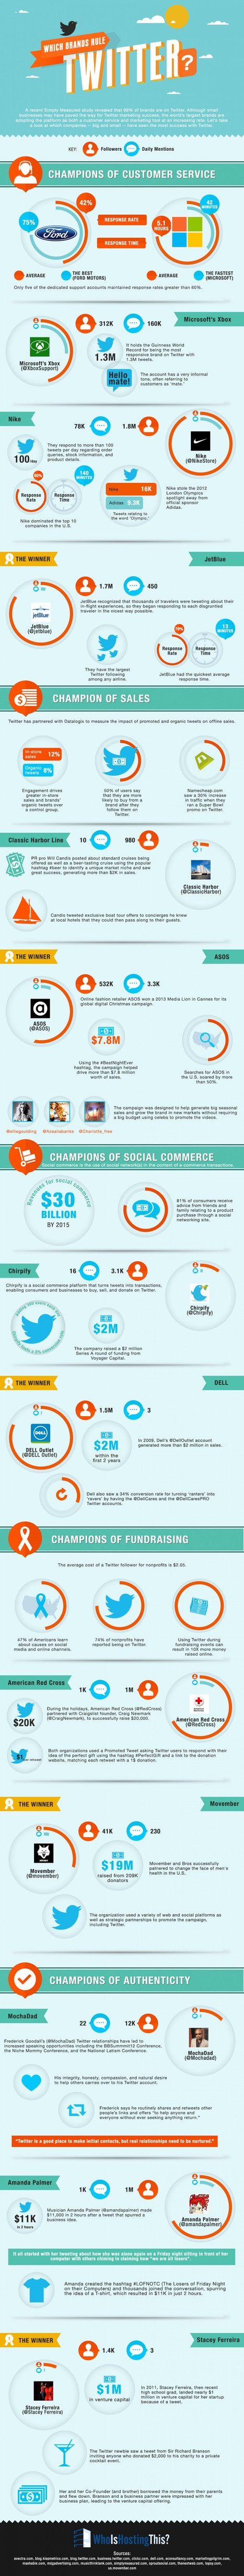 Which Brands Rule Twitter? | Visual.ly | Internet Marketing | Scoop.it